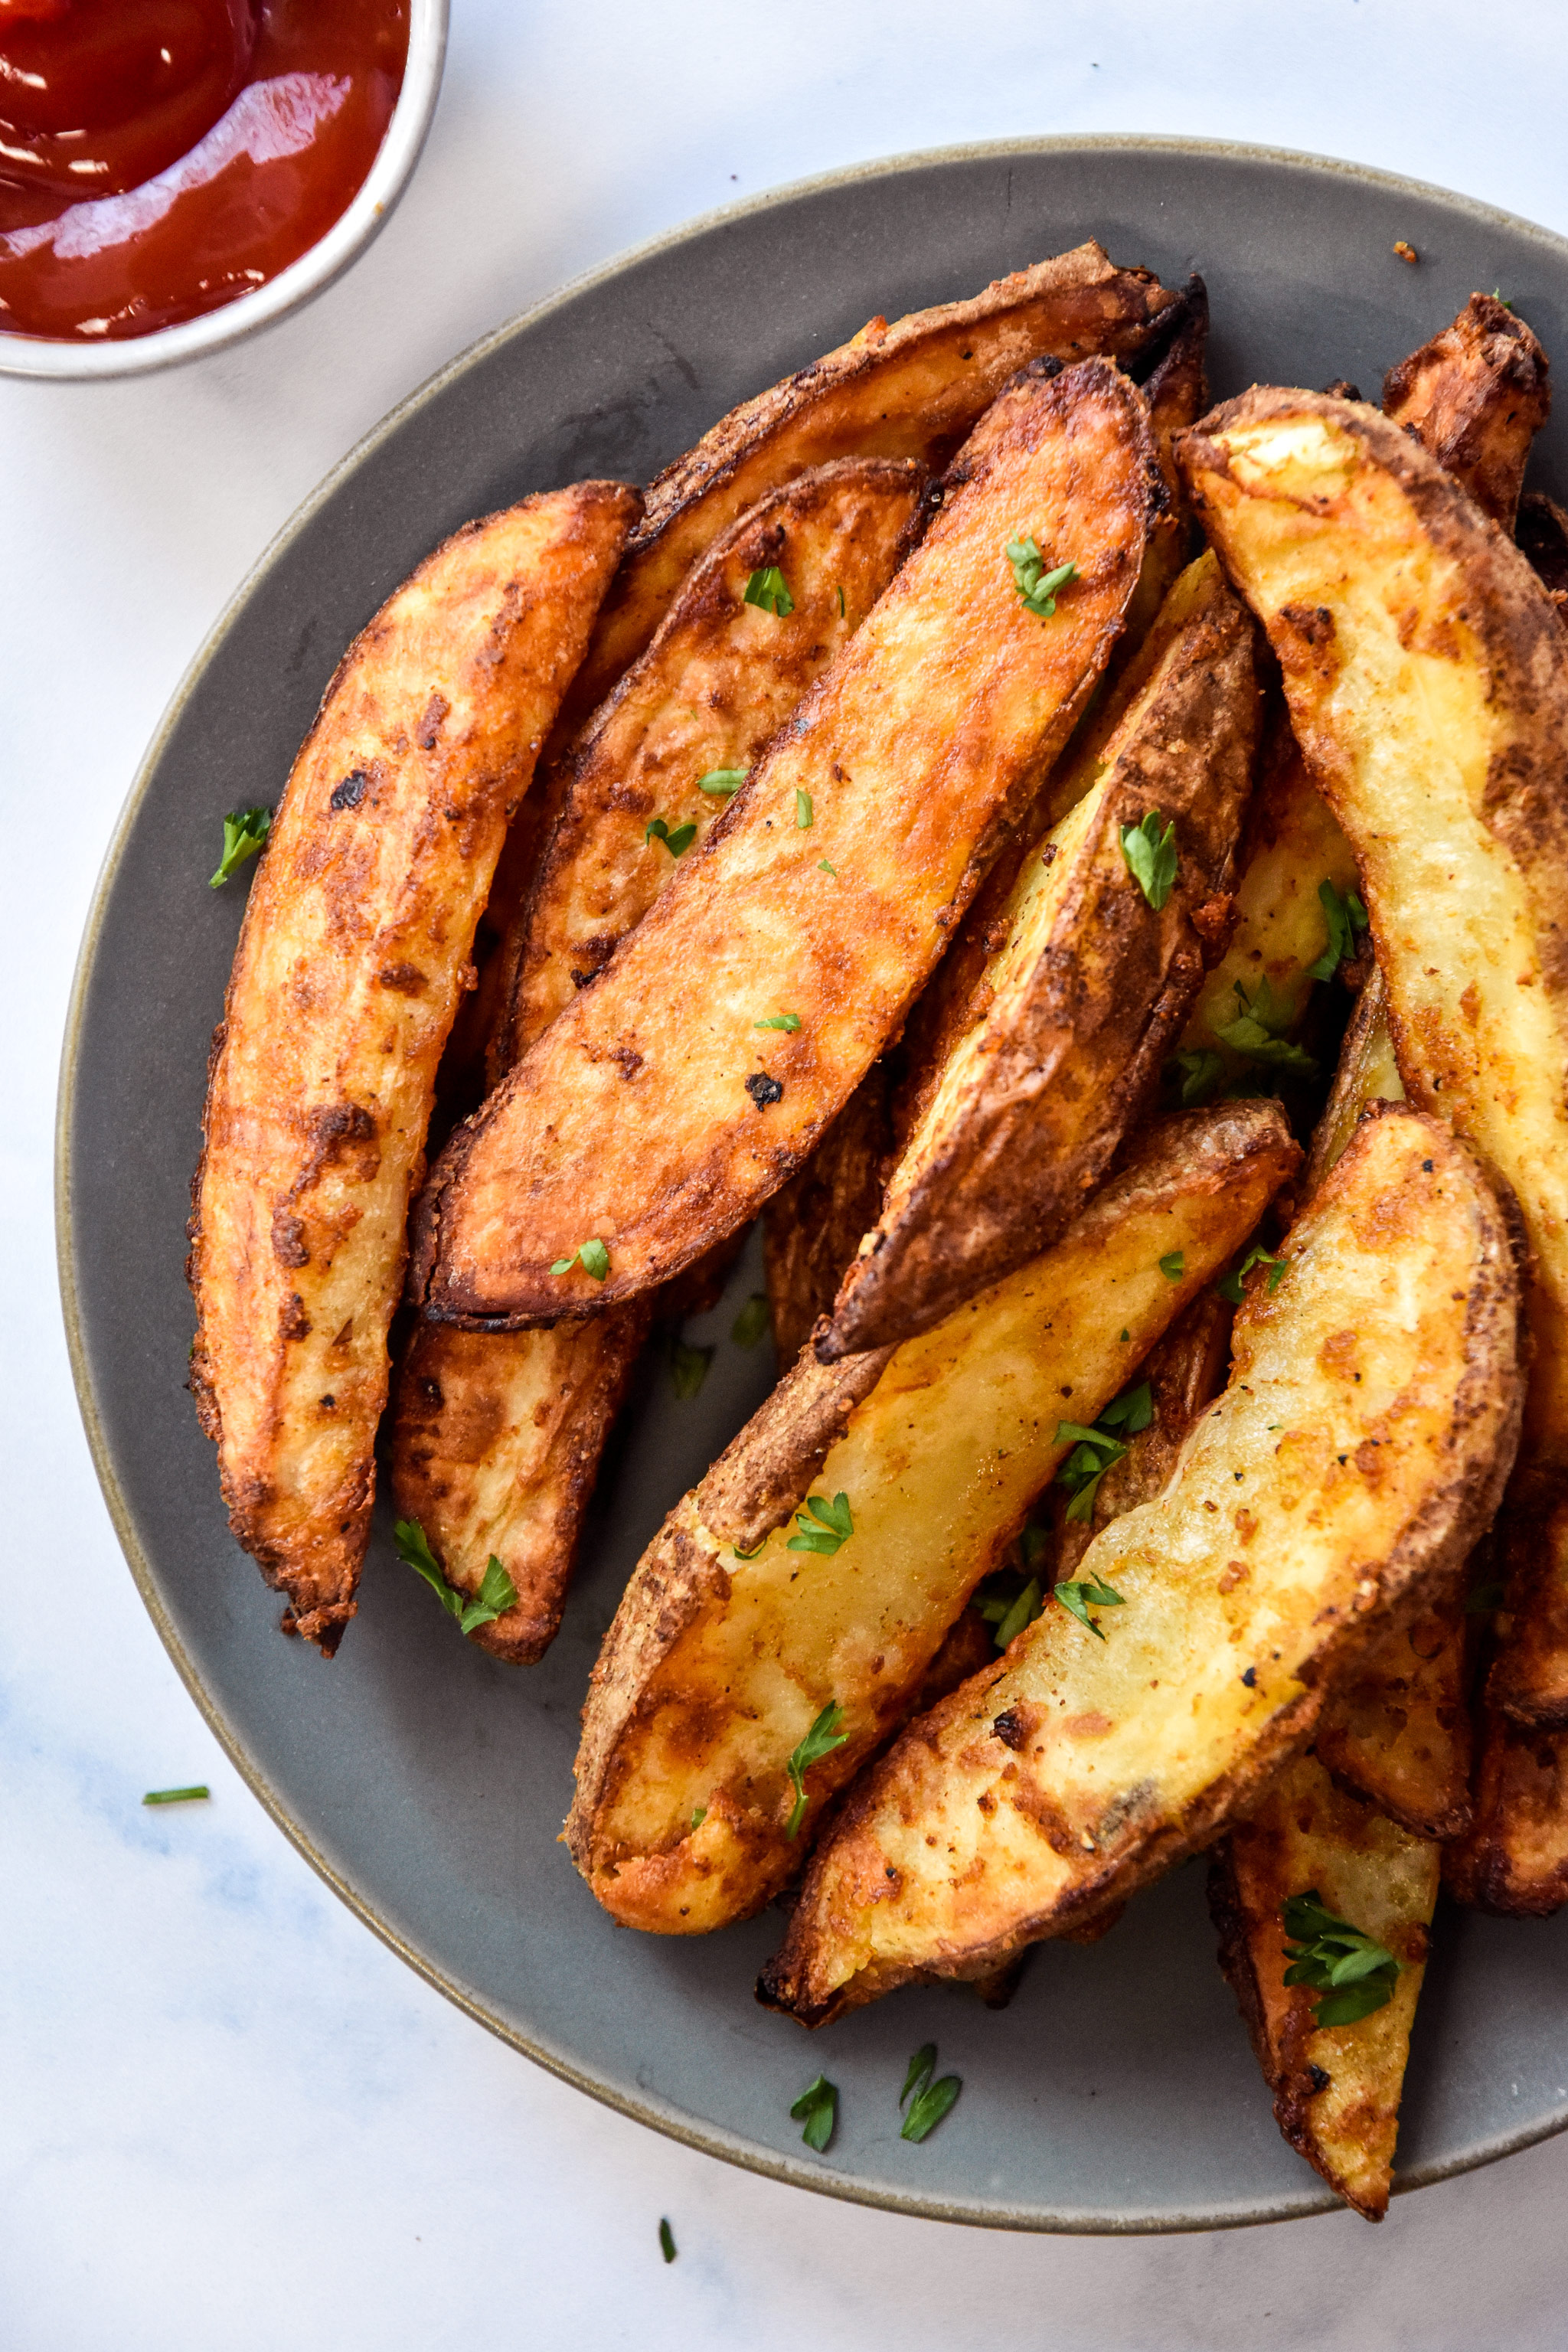 air fryer jojo potato wedges on a plate with parsley sprinkled on top.